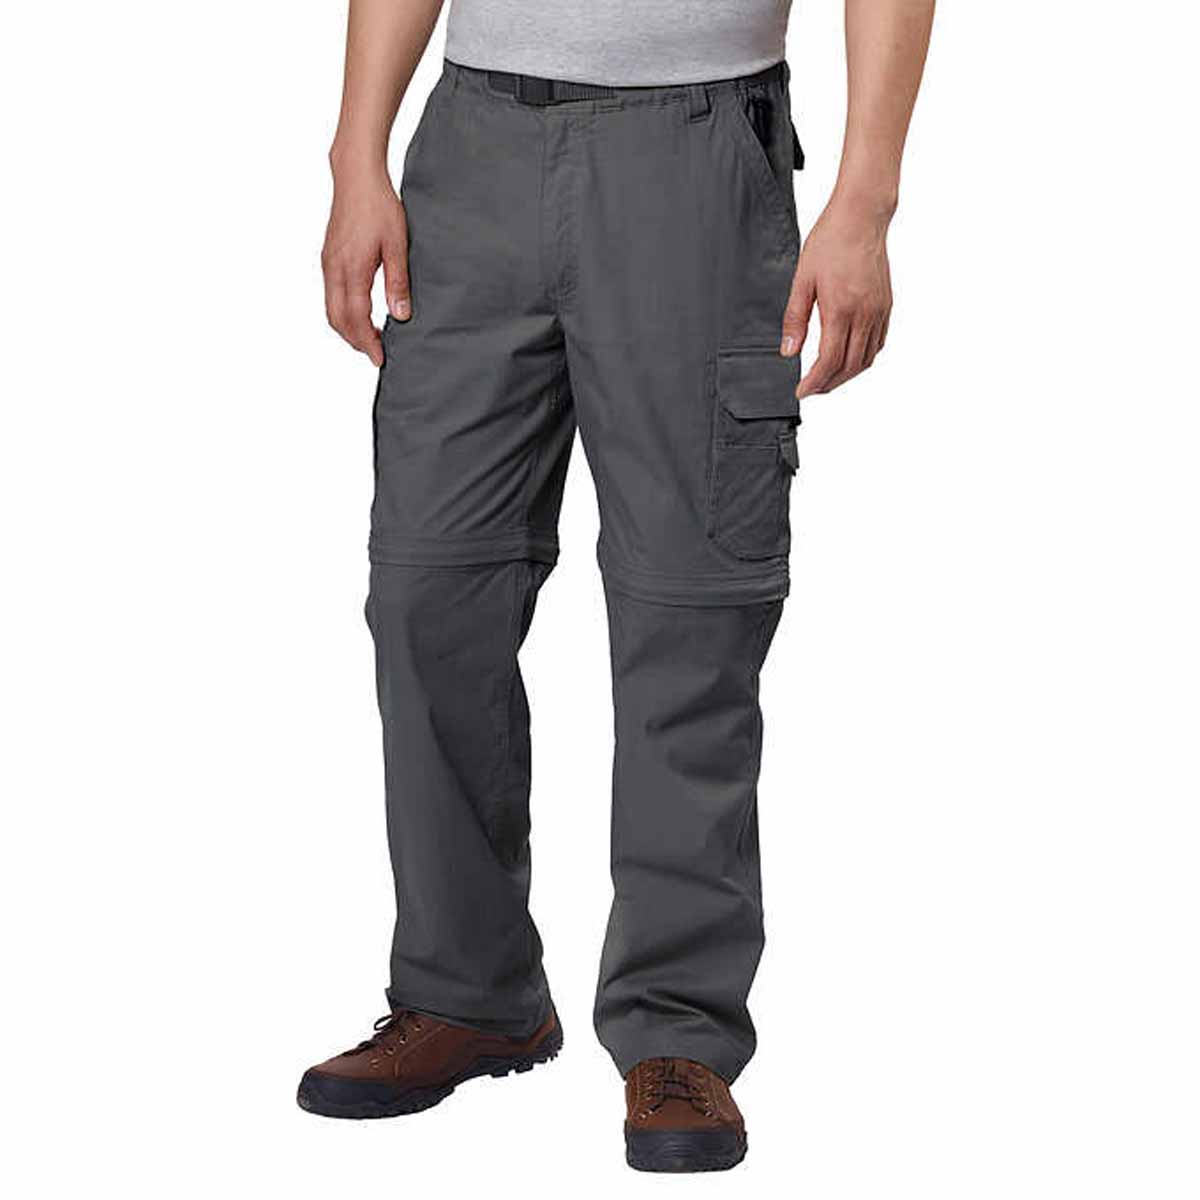 BC Clothing Men/'s Convertible Stretch Cargo Hiking Active Pants Short size//color